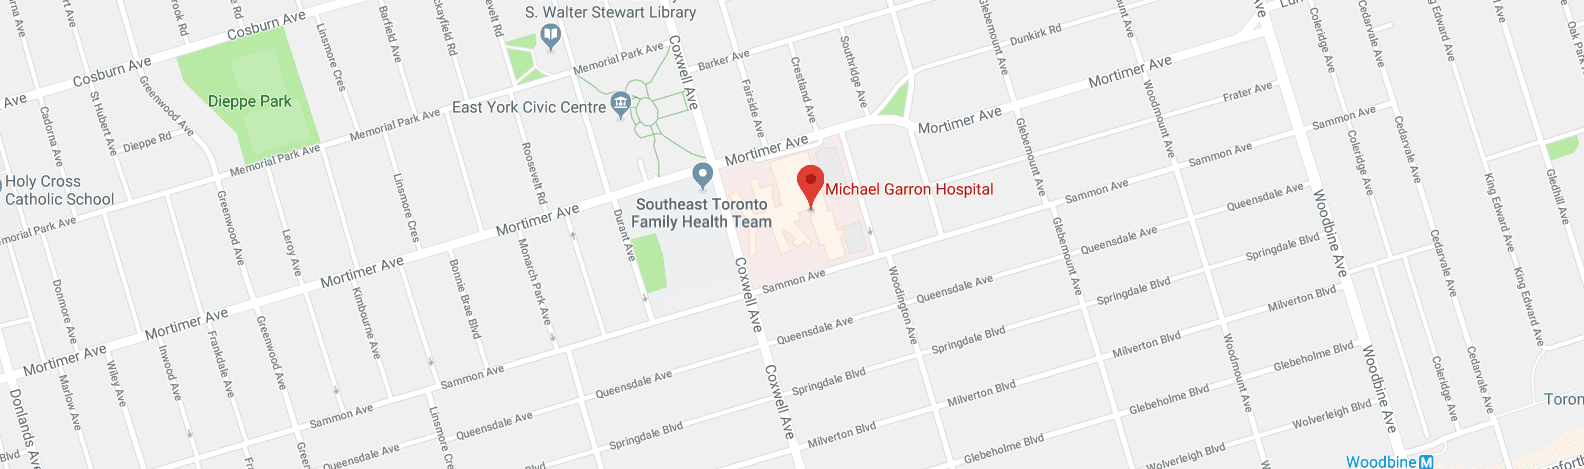 michael garron hospital map